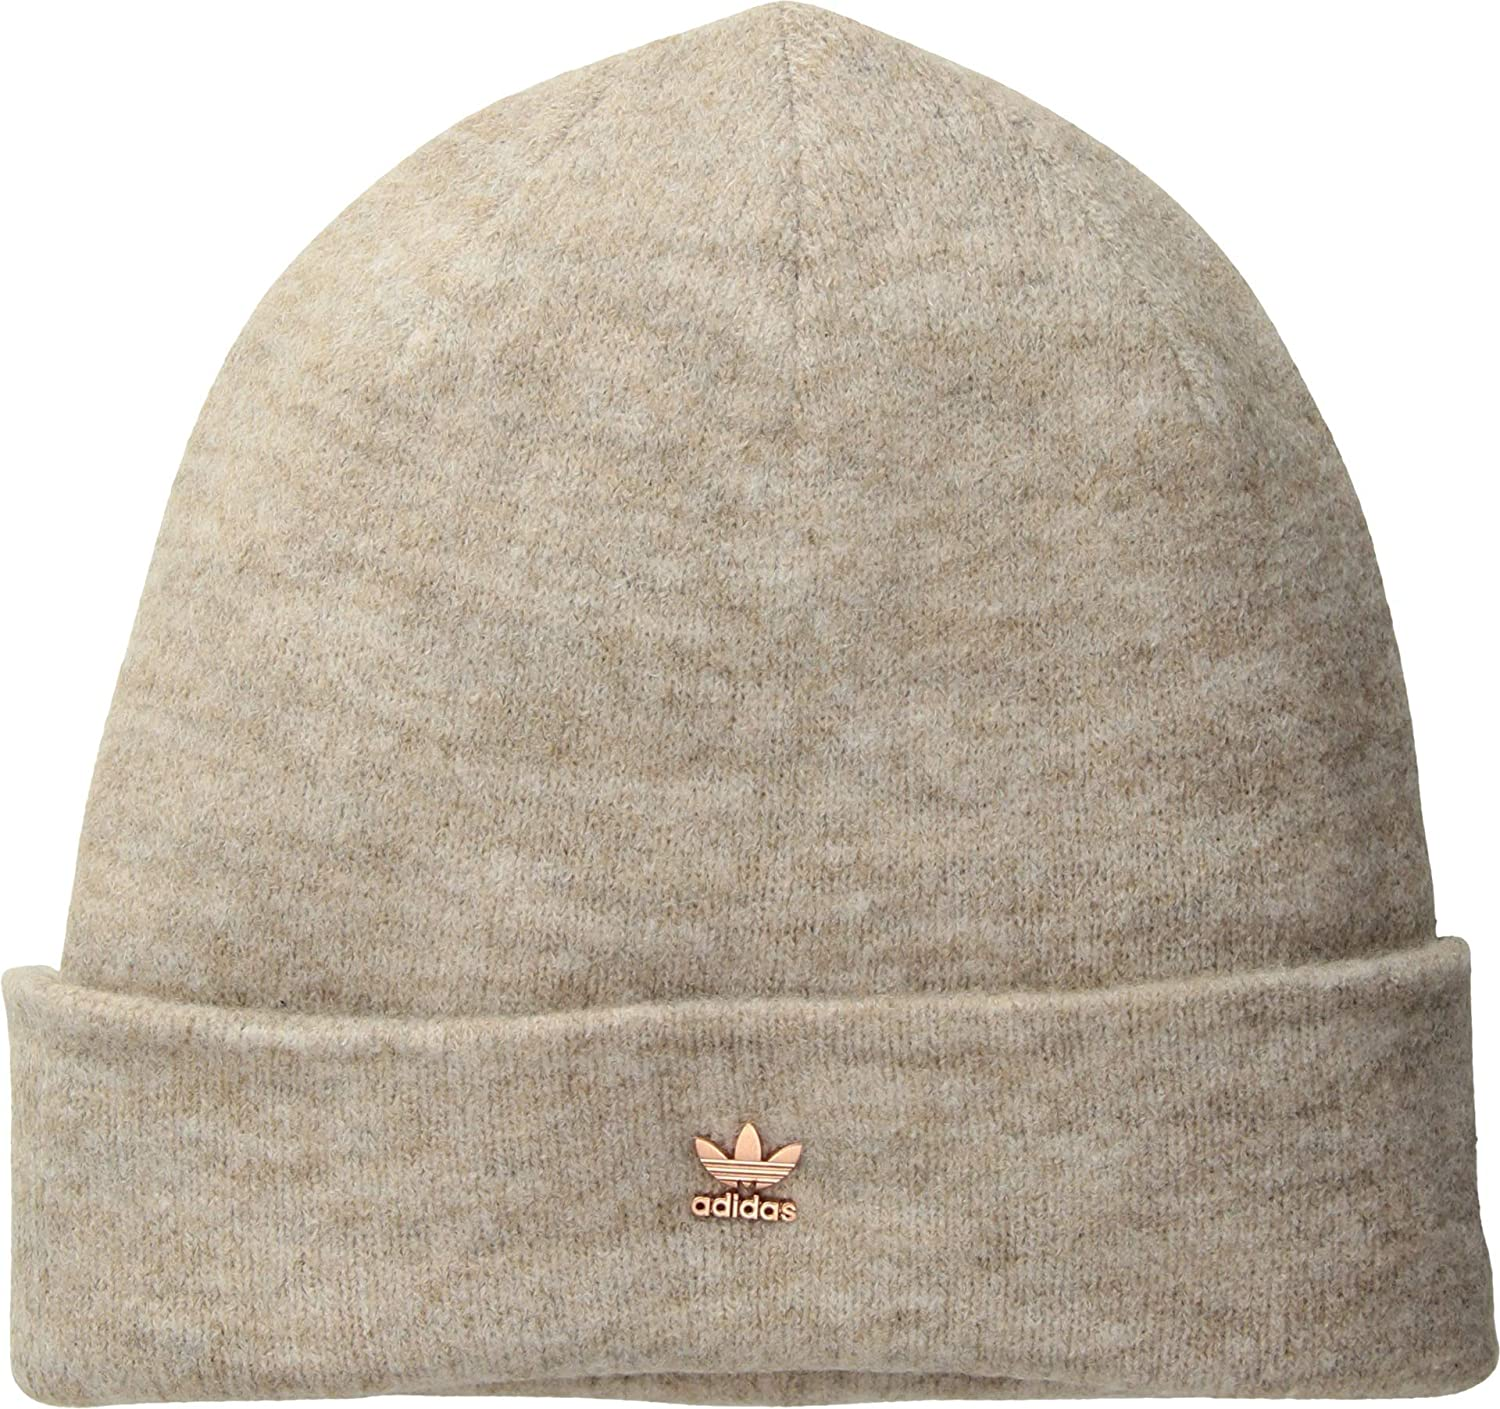 adidas Originals Women s Originals Fuzzy Beanie Grey Matte Silver One Size  at Amazon Women s Clothing store  ca89e5b41c77